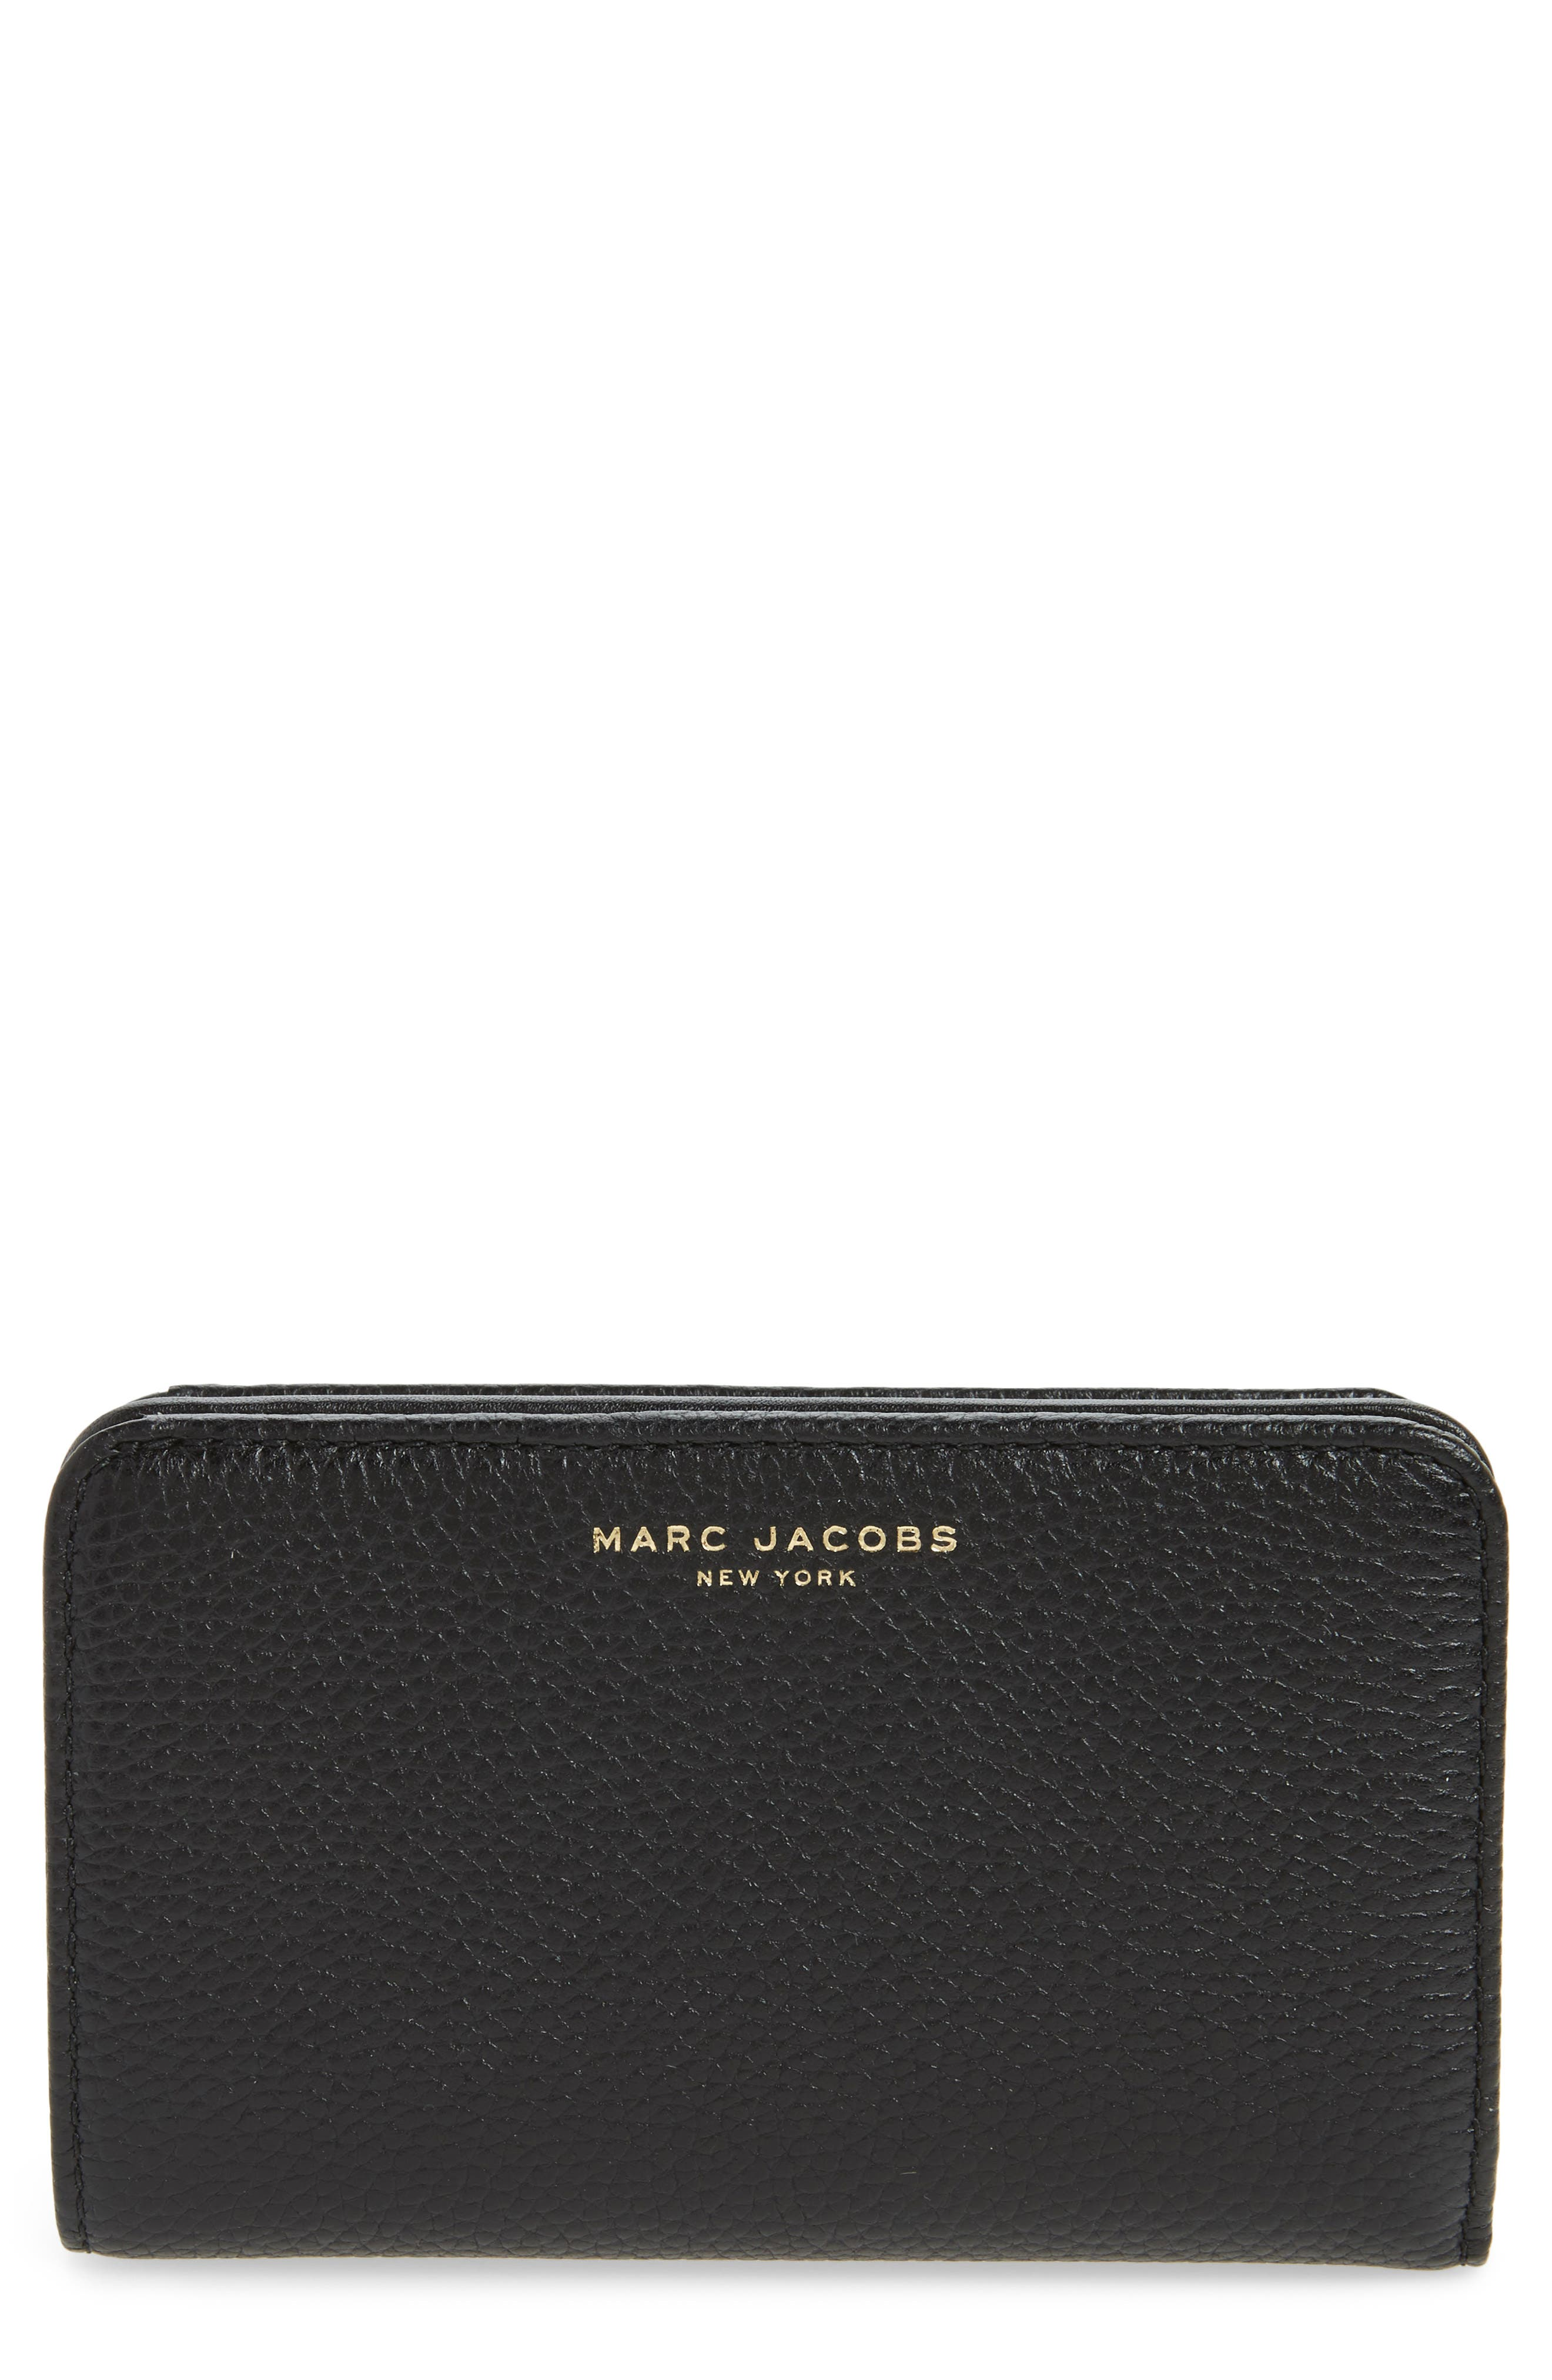 Gotham Compact Leather Wallet,                         Main,                         color, Black/ Gold